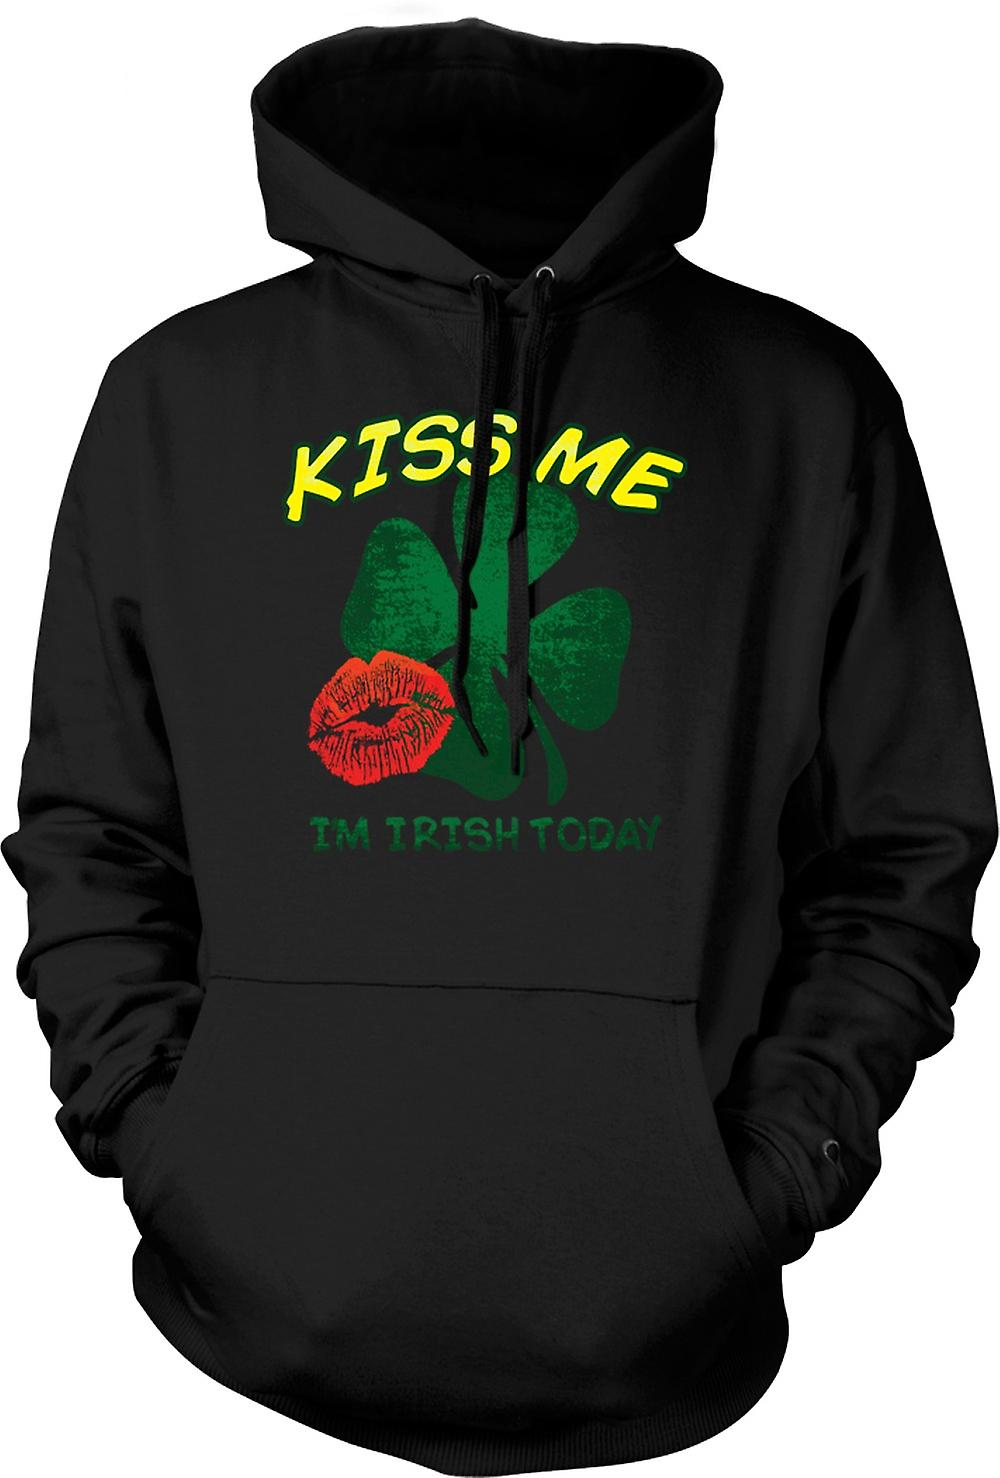 Mens Hoodie - St Patricks Day - Kiss Me I'm Irish Today